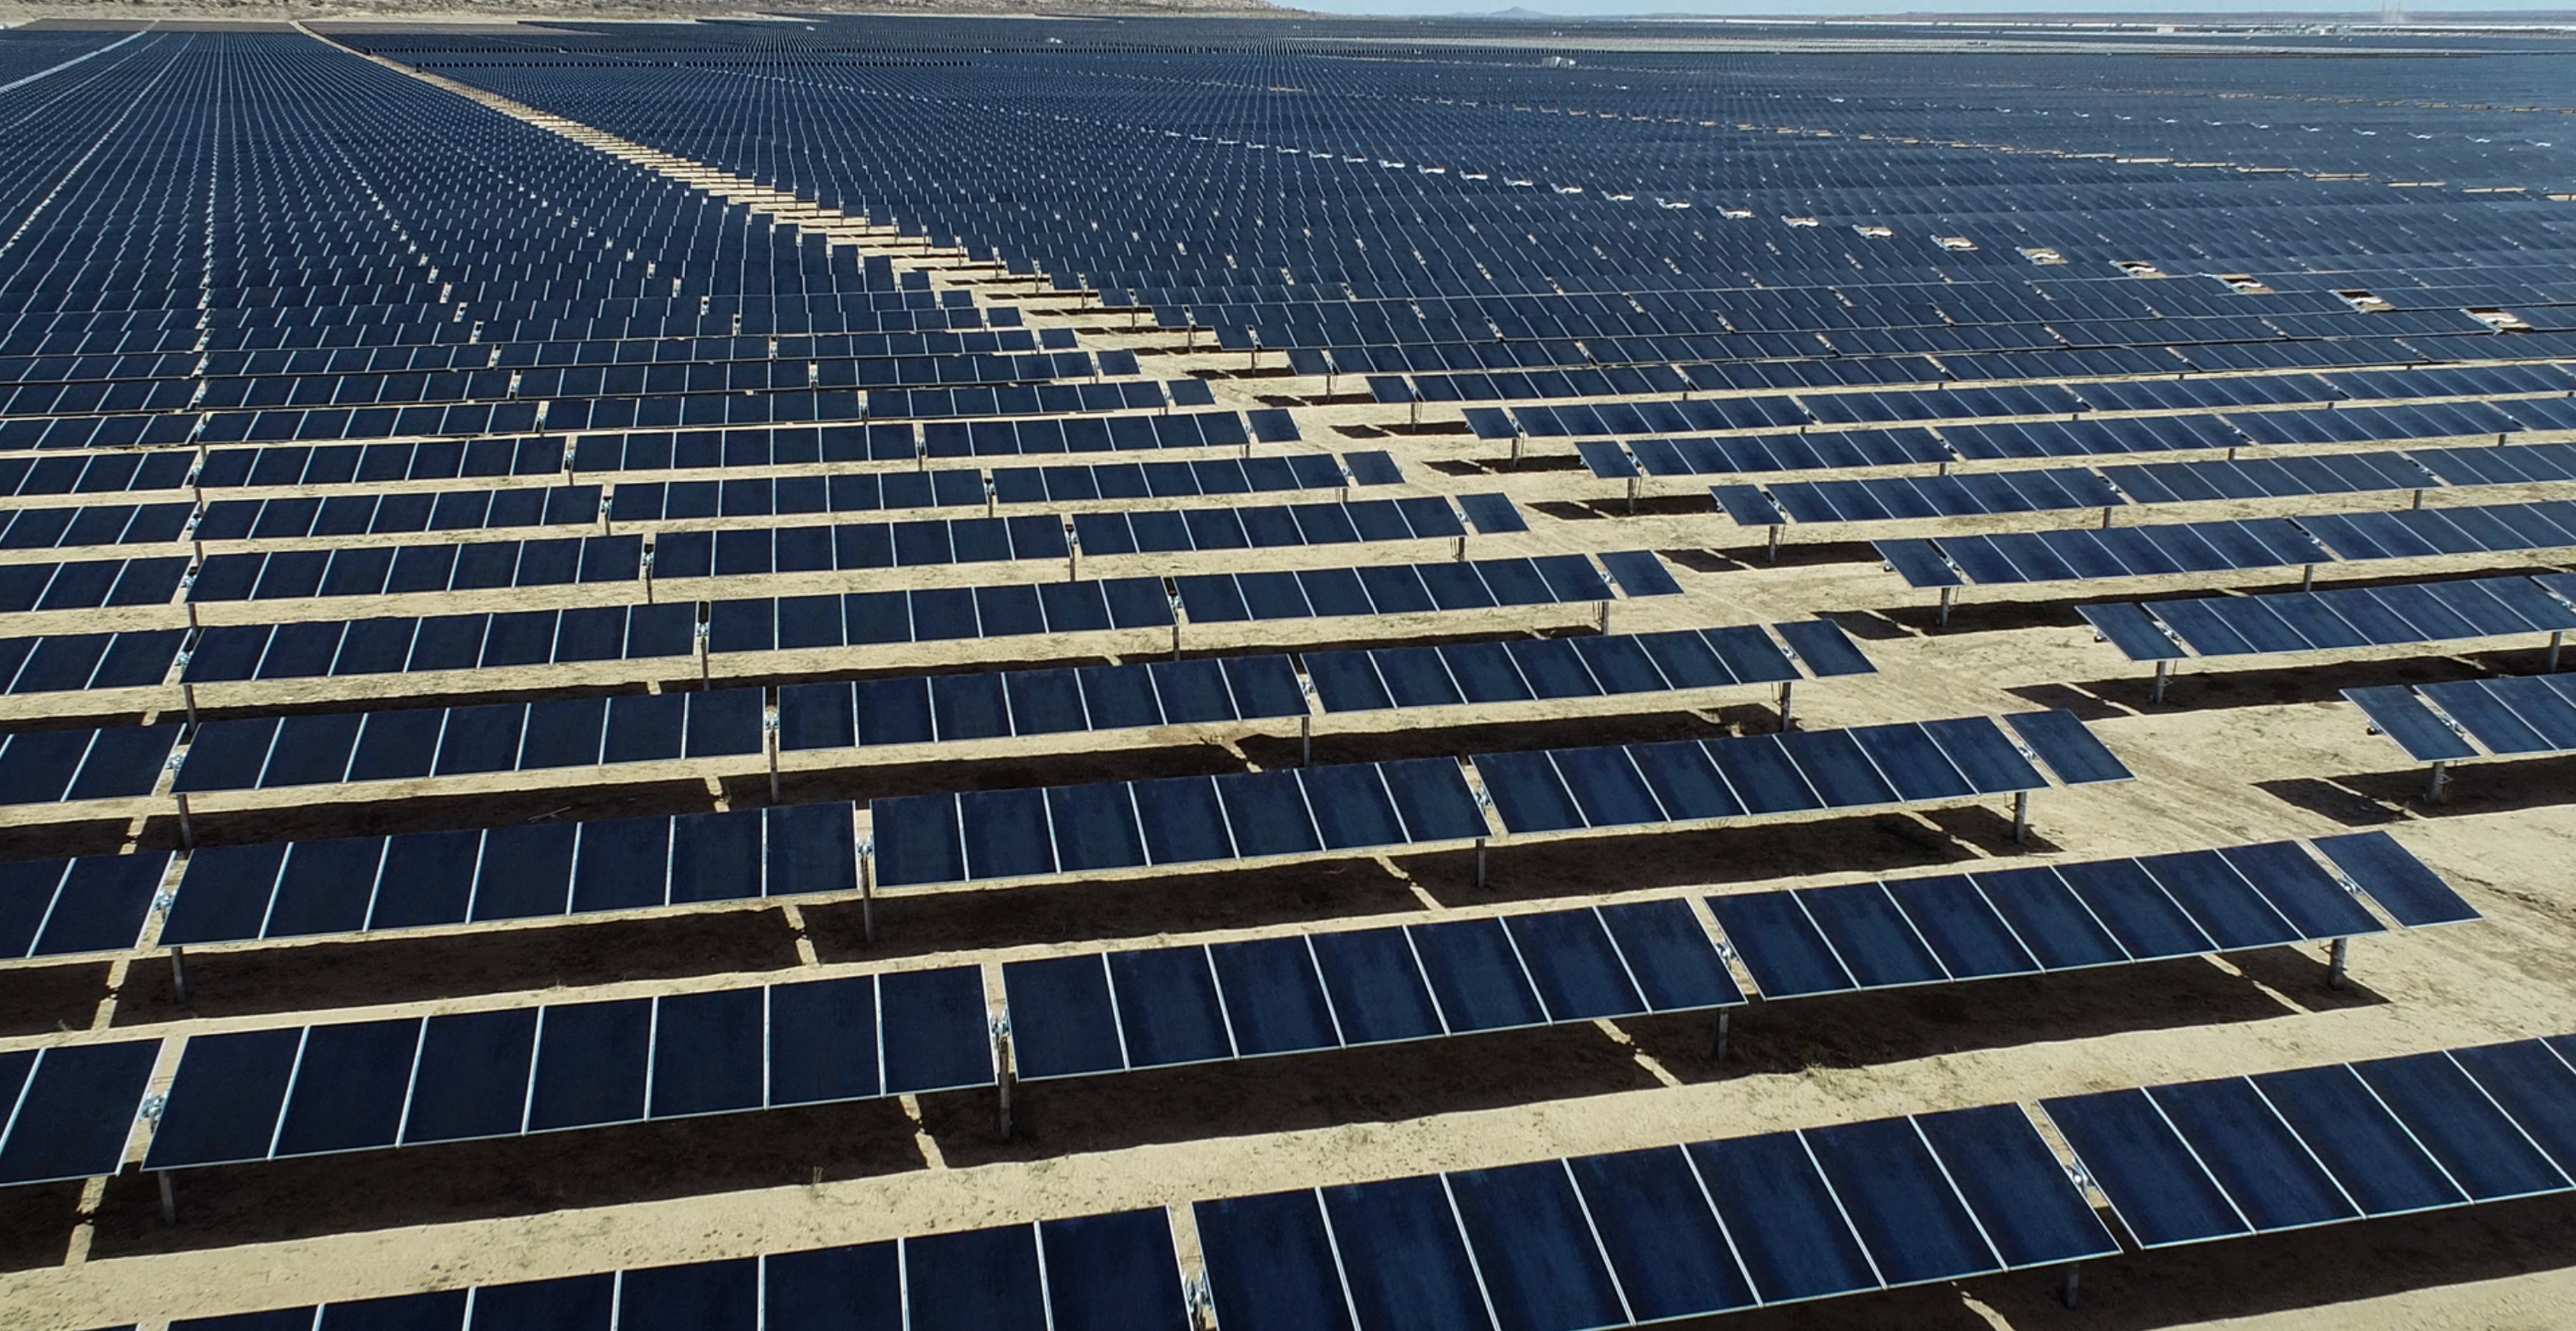 SB Energy Announces Closing of Financing and Building of 1.7GW of Solar Projects Across California and Texas